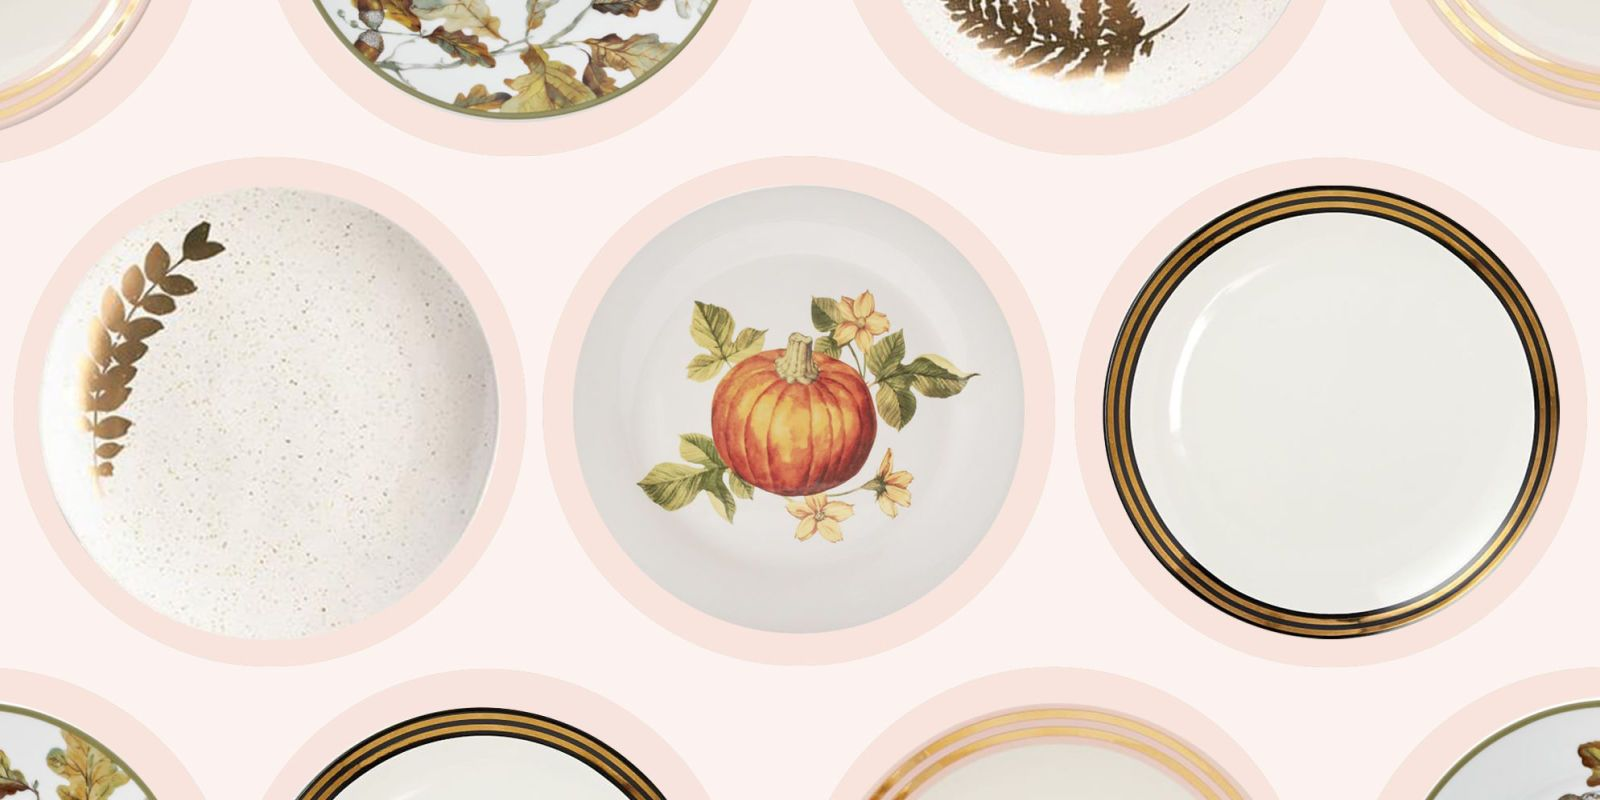 Chic Thanksgiving Dinnerware for Hosting in 2018 - Thanksgiving Dishes and Plates for Your Table  sc 1 st  BestProducts.com & Chic Thanksgiving Dinnerware for Hosting in 2018 - Thanksgiving ...